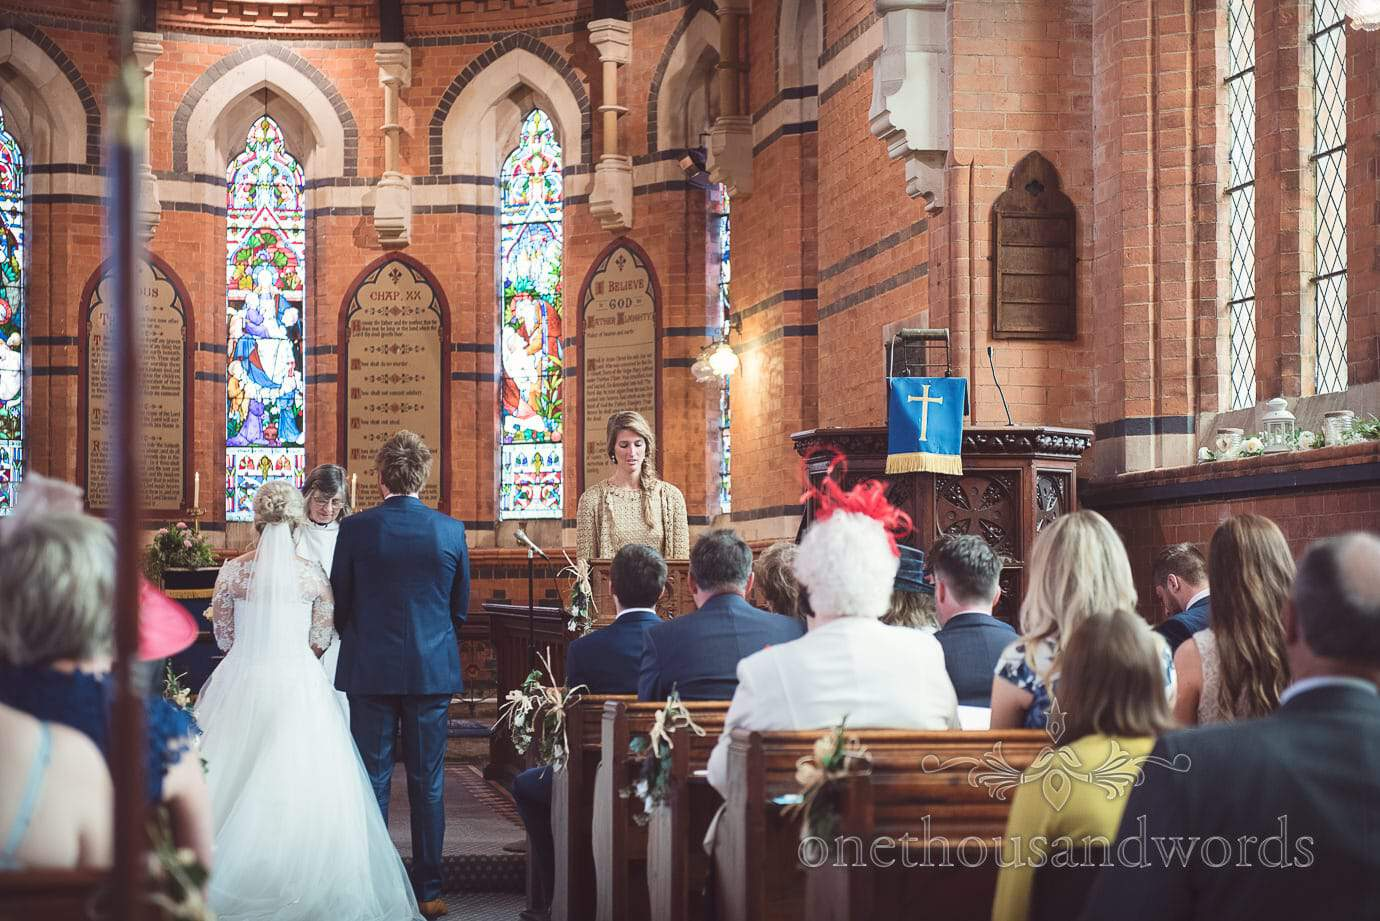 Wedding guest in gold gives bible reading at Church wedding ceremony